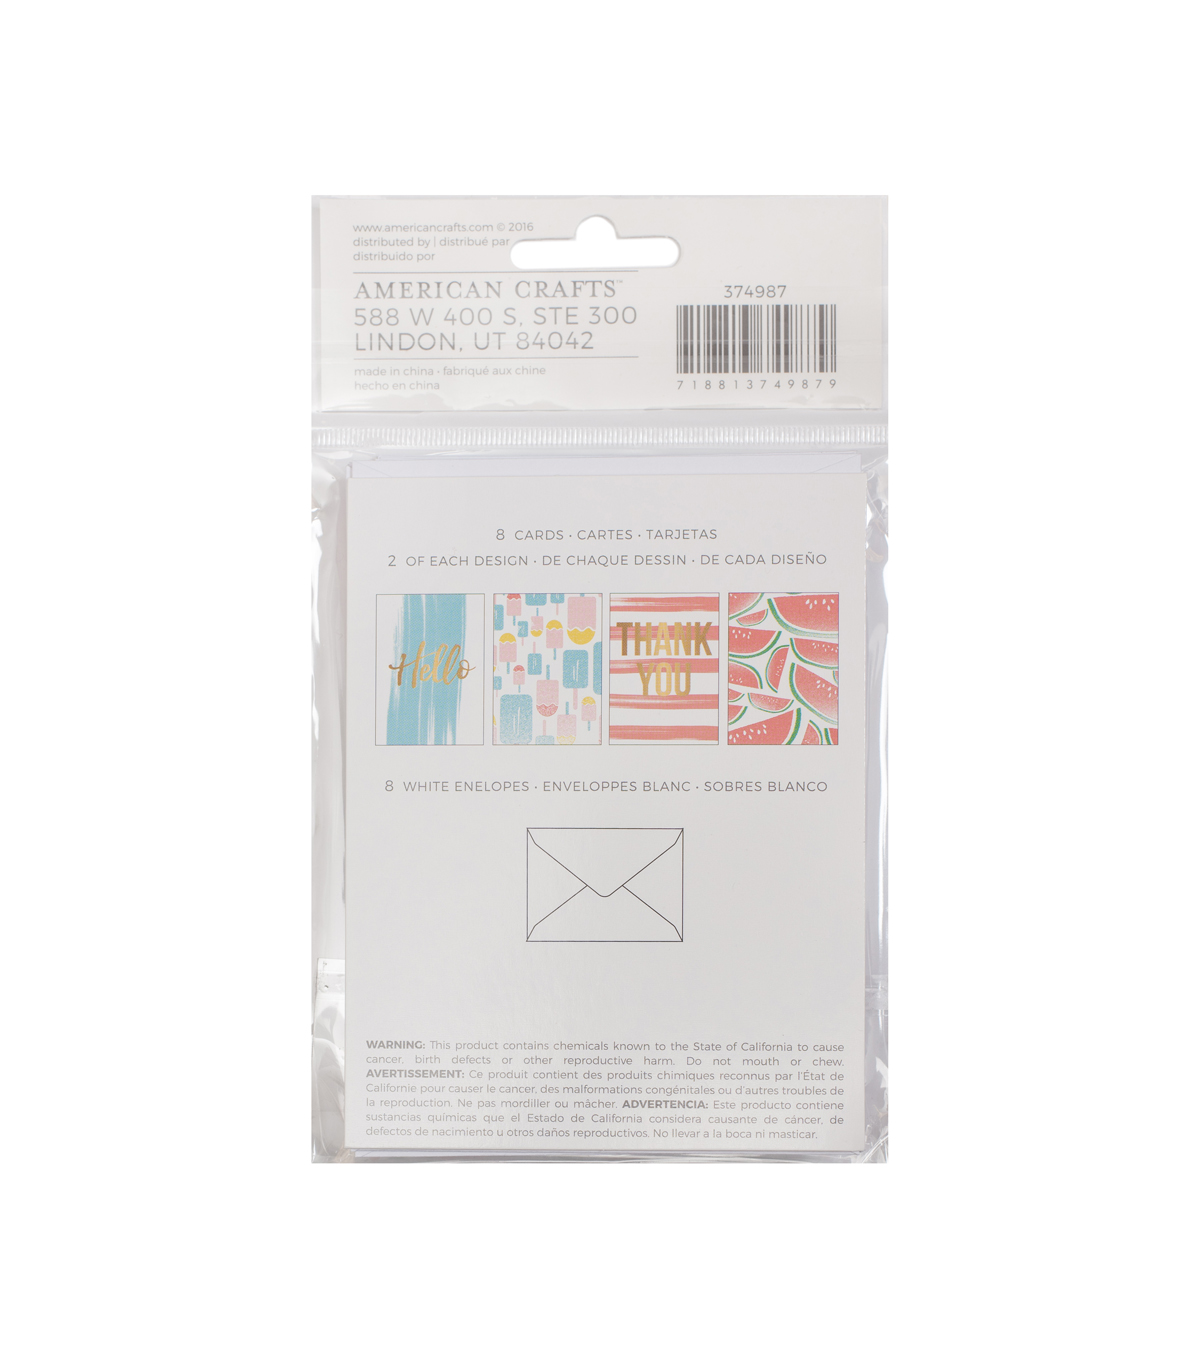 American Crafts™ Memory Planner Cards & Envelopes Pack